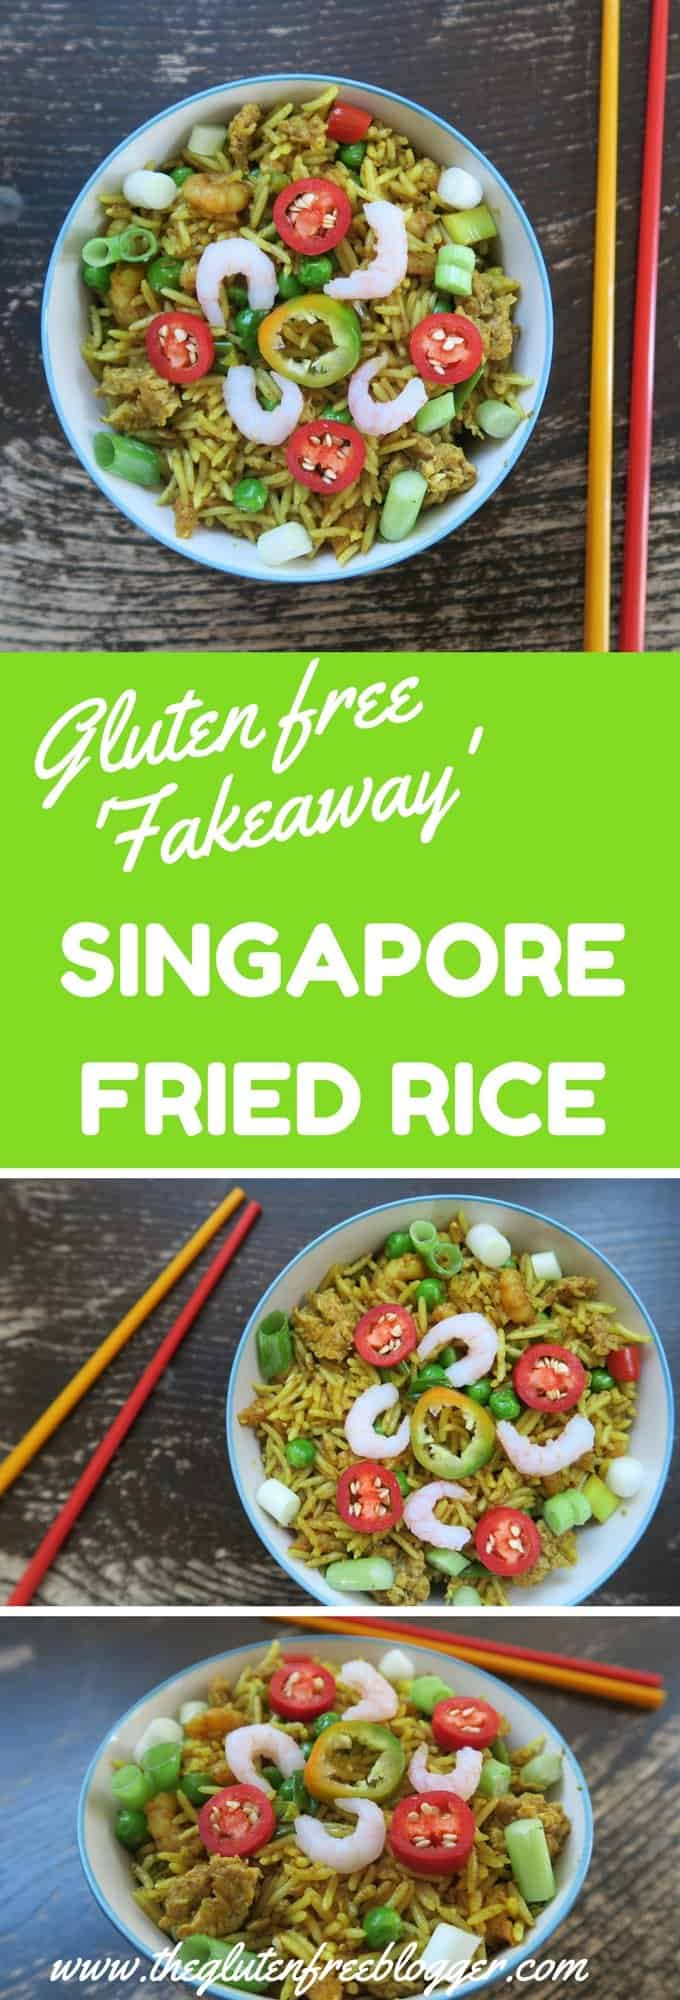 GLUTEN FREE CHINESE IDEAS - SINGAPORE FRIED RICE - FROM THE GLUTEN FREE BLOGGER - www.theglutenfreeblogger.com